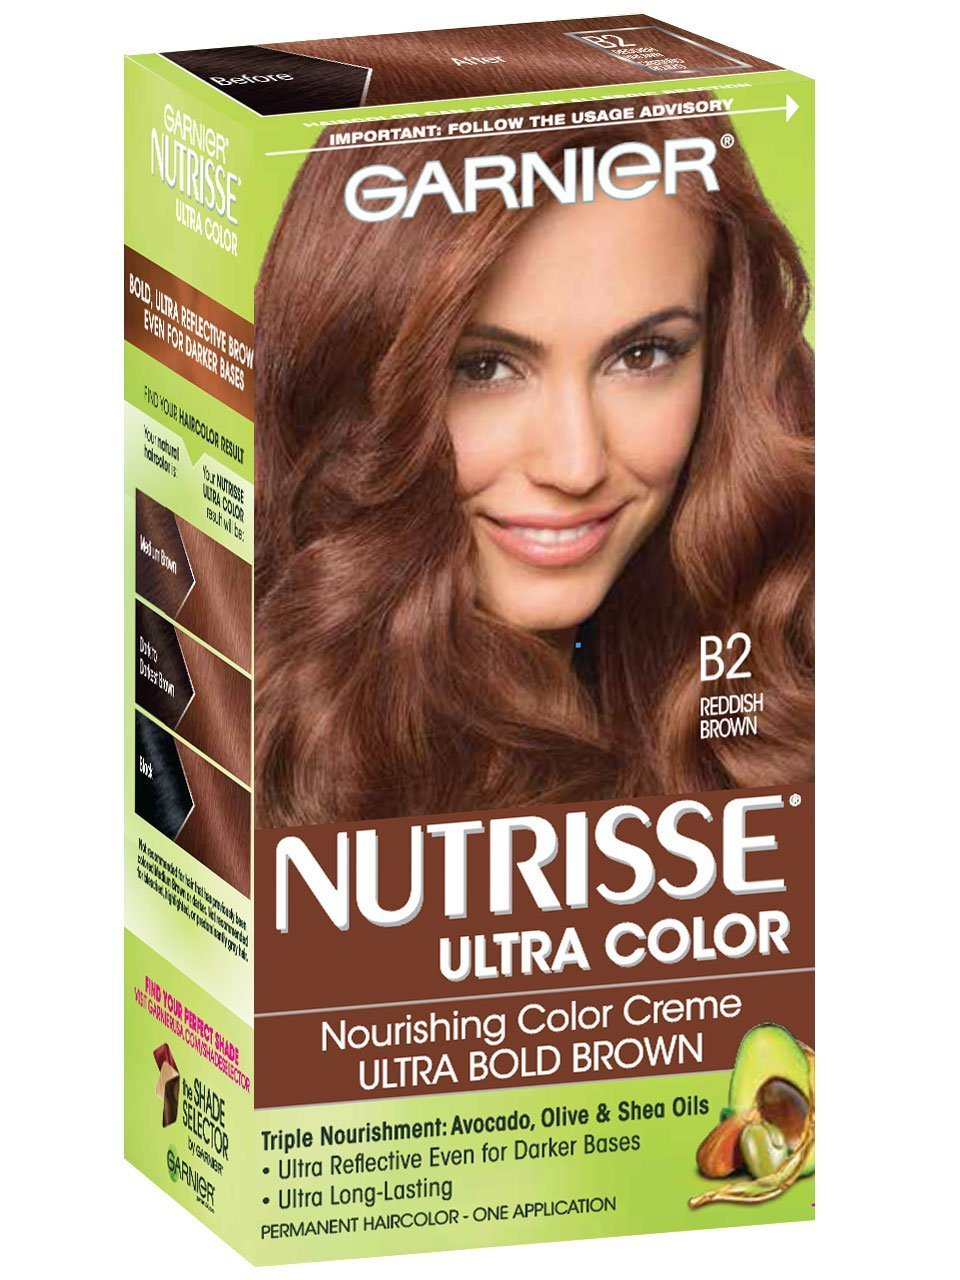 The Best Nutrisse Ultra Color Reddish Brown Hair Color Garnier Pictures